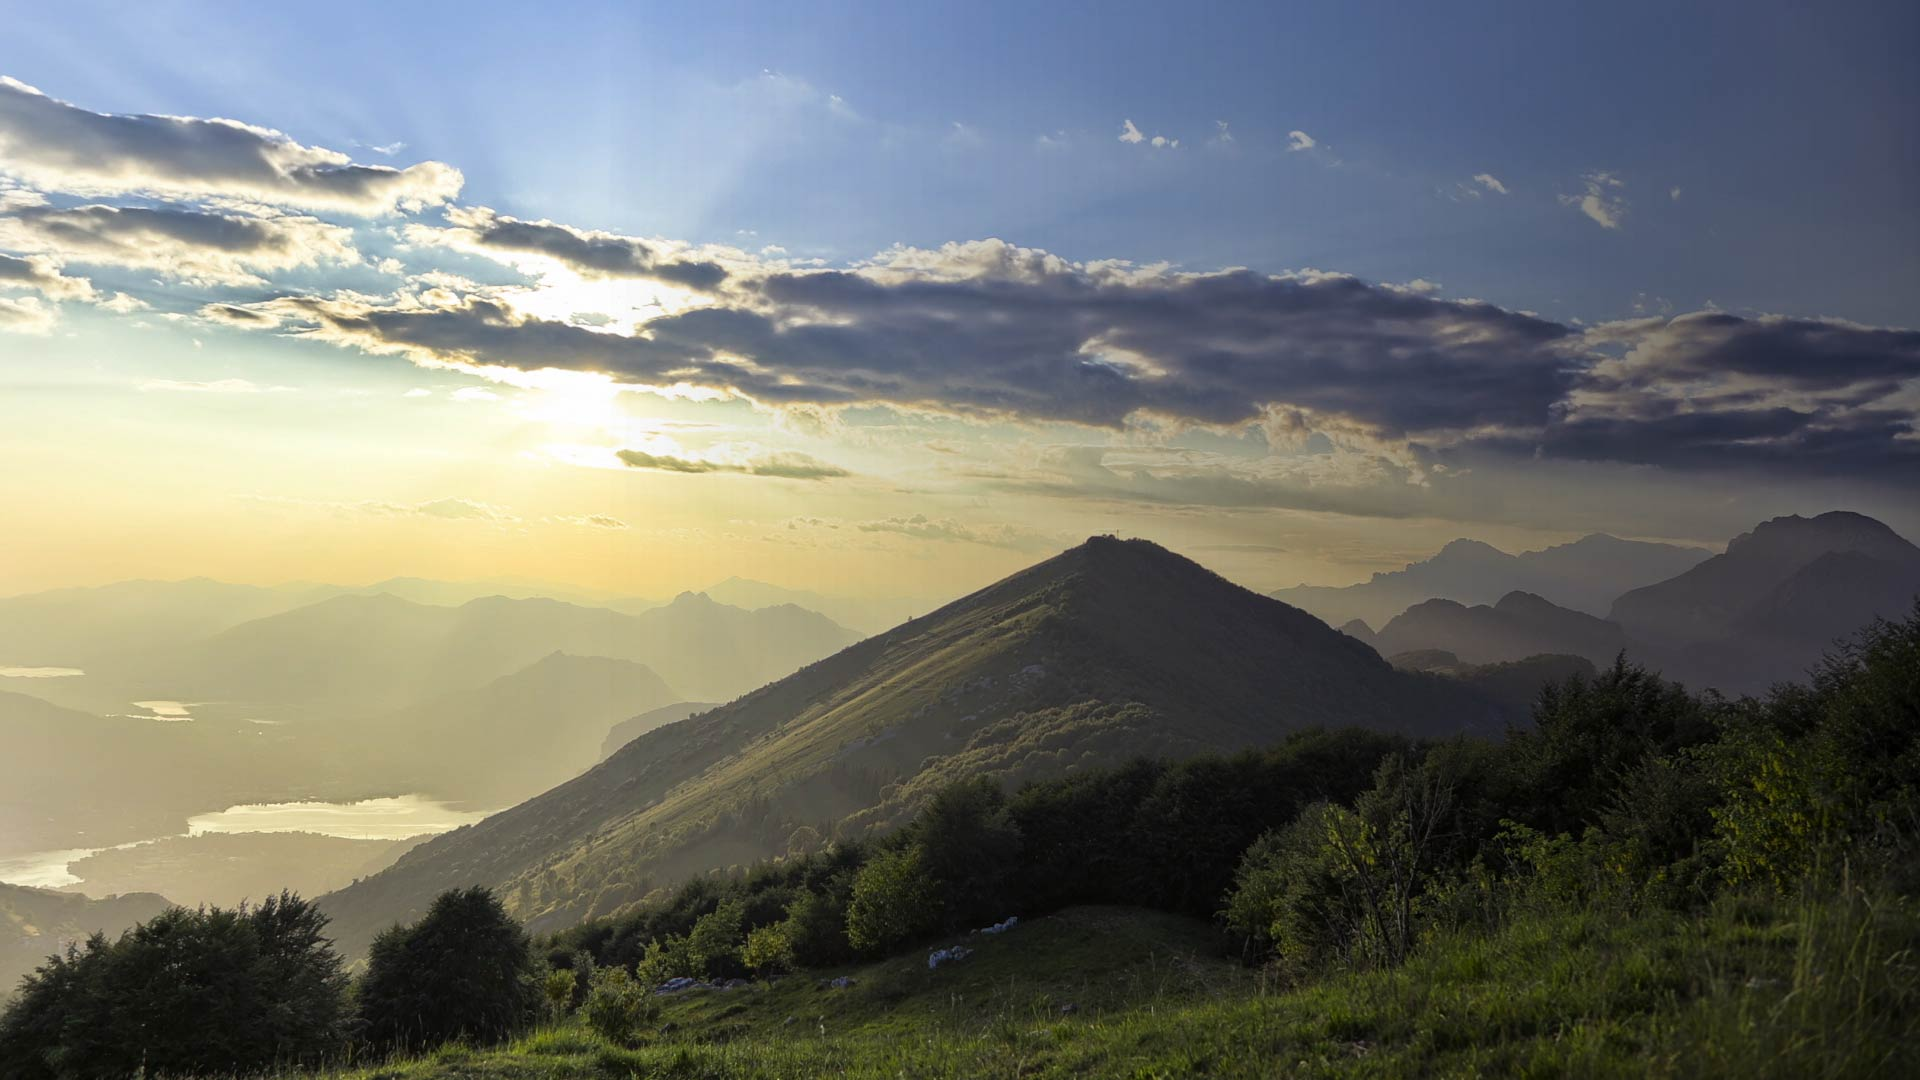 mountains-placeholder-1